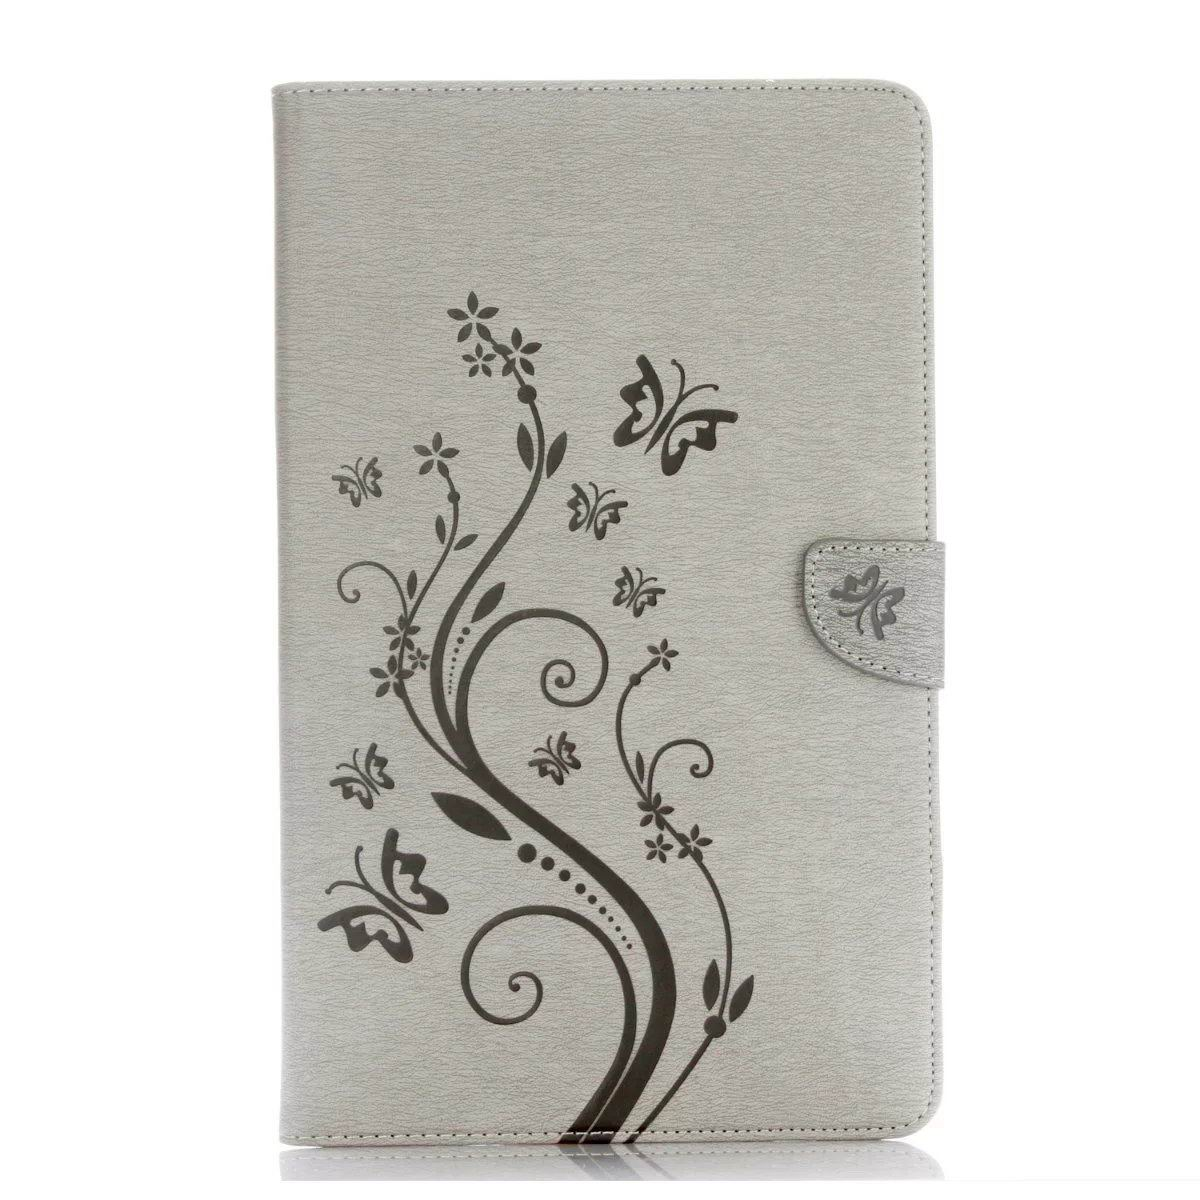 galaxy tab a 10 1 s pen 2016 business multicolor case with monochrome flowers 2 stand and credit card pockets Gray: